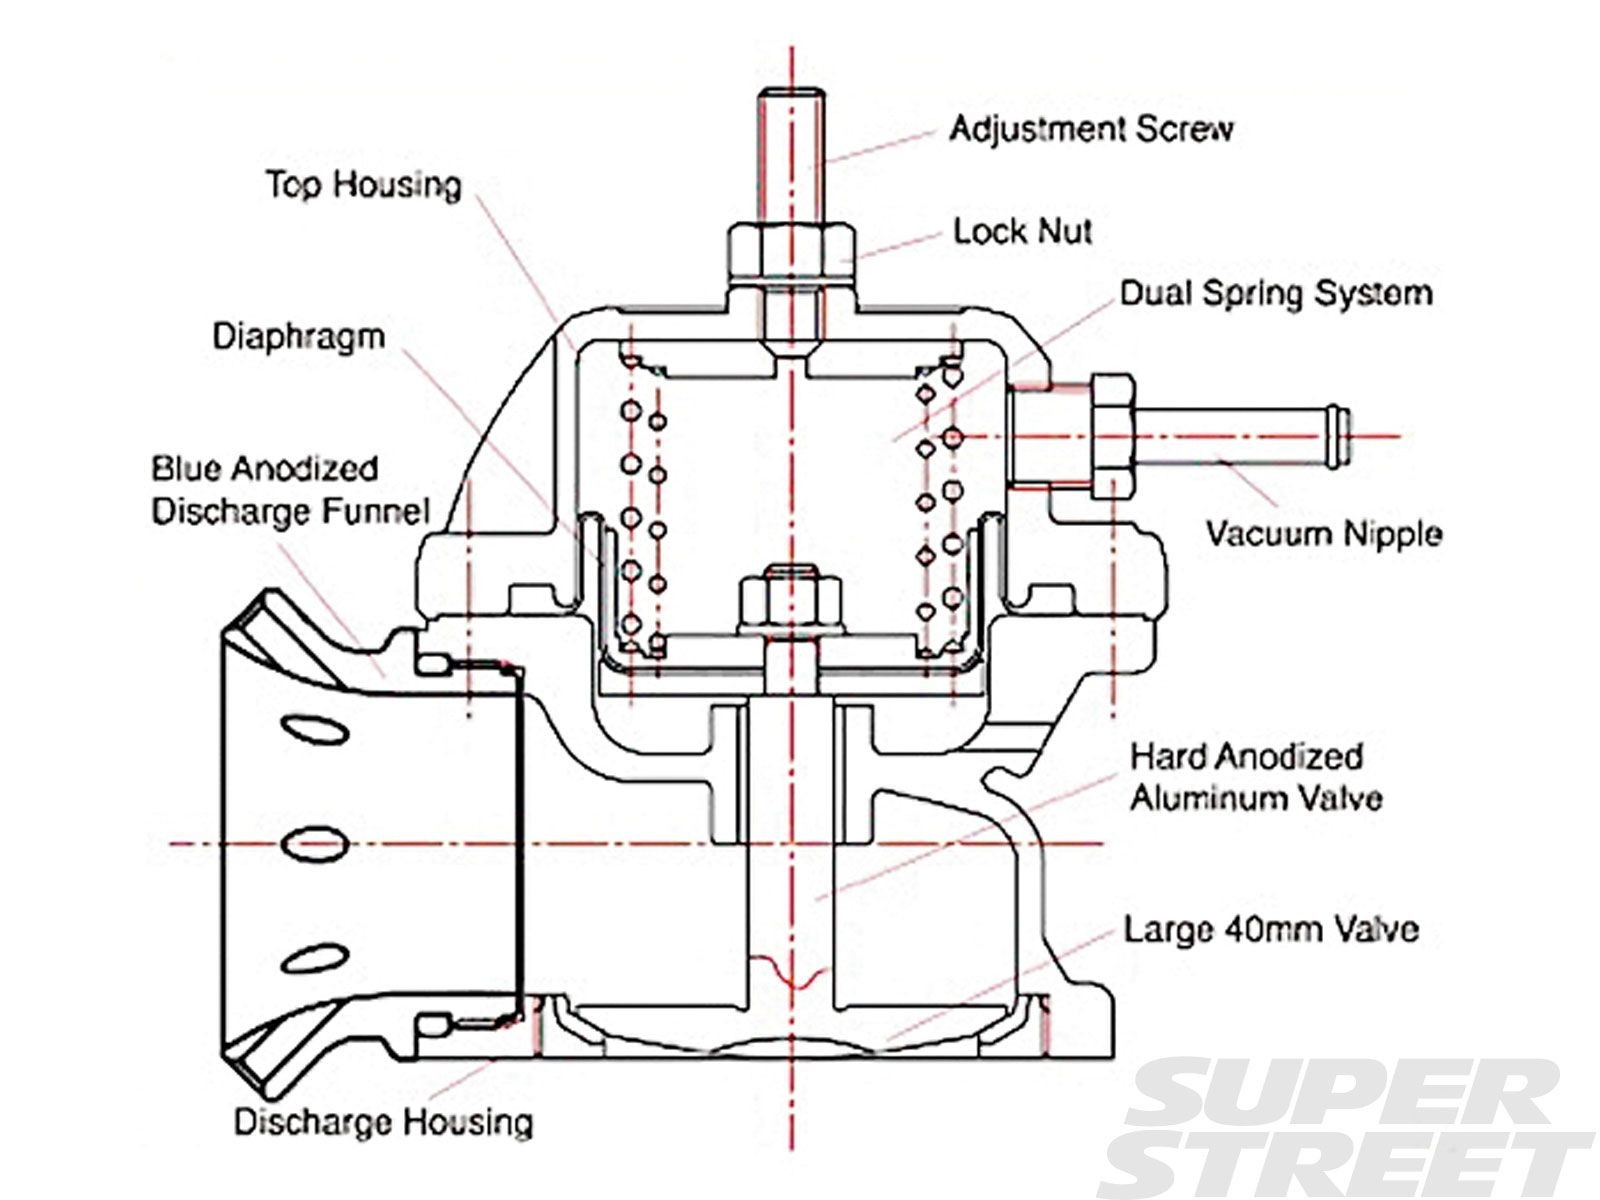 Valve Train Diagram Engine Valves Diagram Wiring Wiring Diagrams Instructions Of Valve Train Diagram